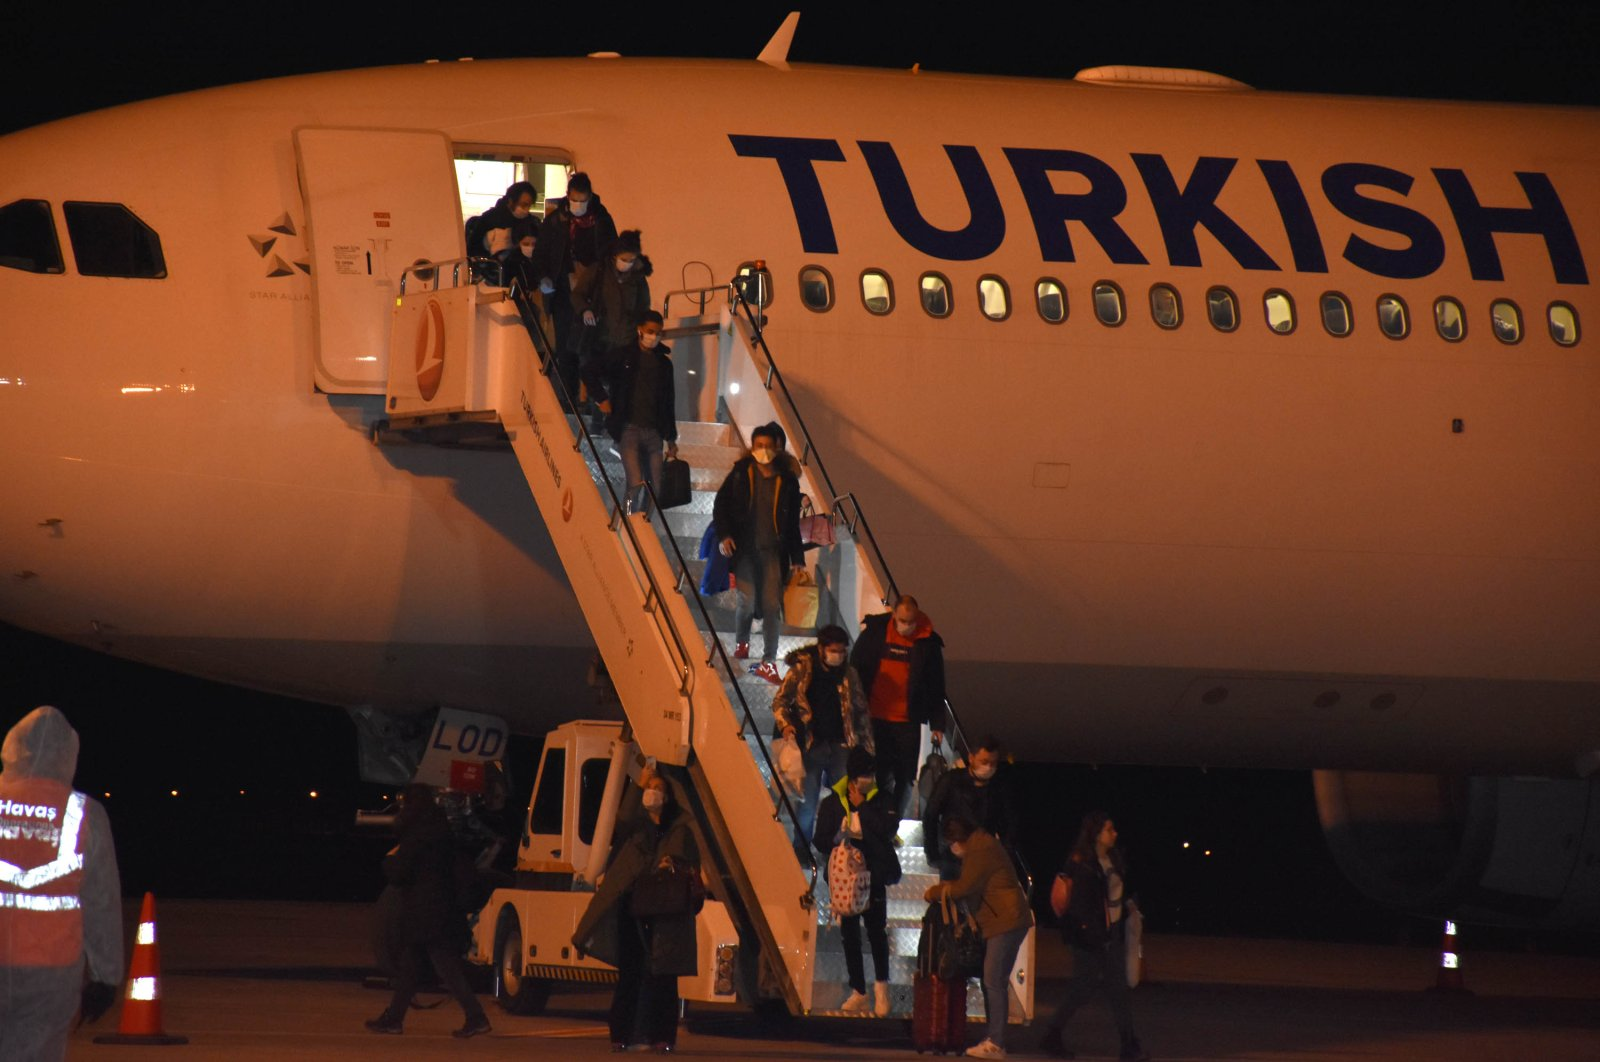 Students arriving from Europe disembark the plane, in Sivas, Monday, March 23, 2020. (DHA Photo)